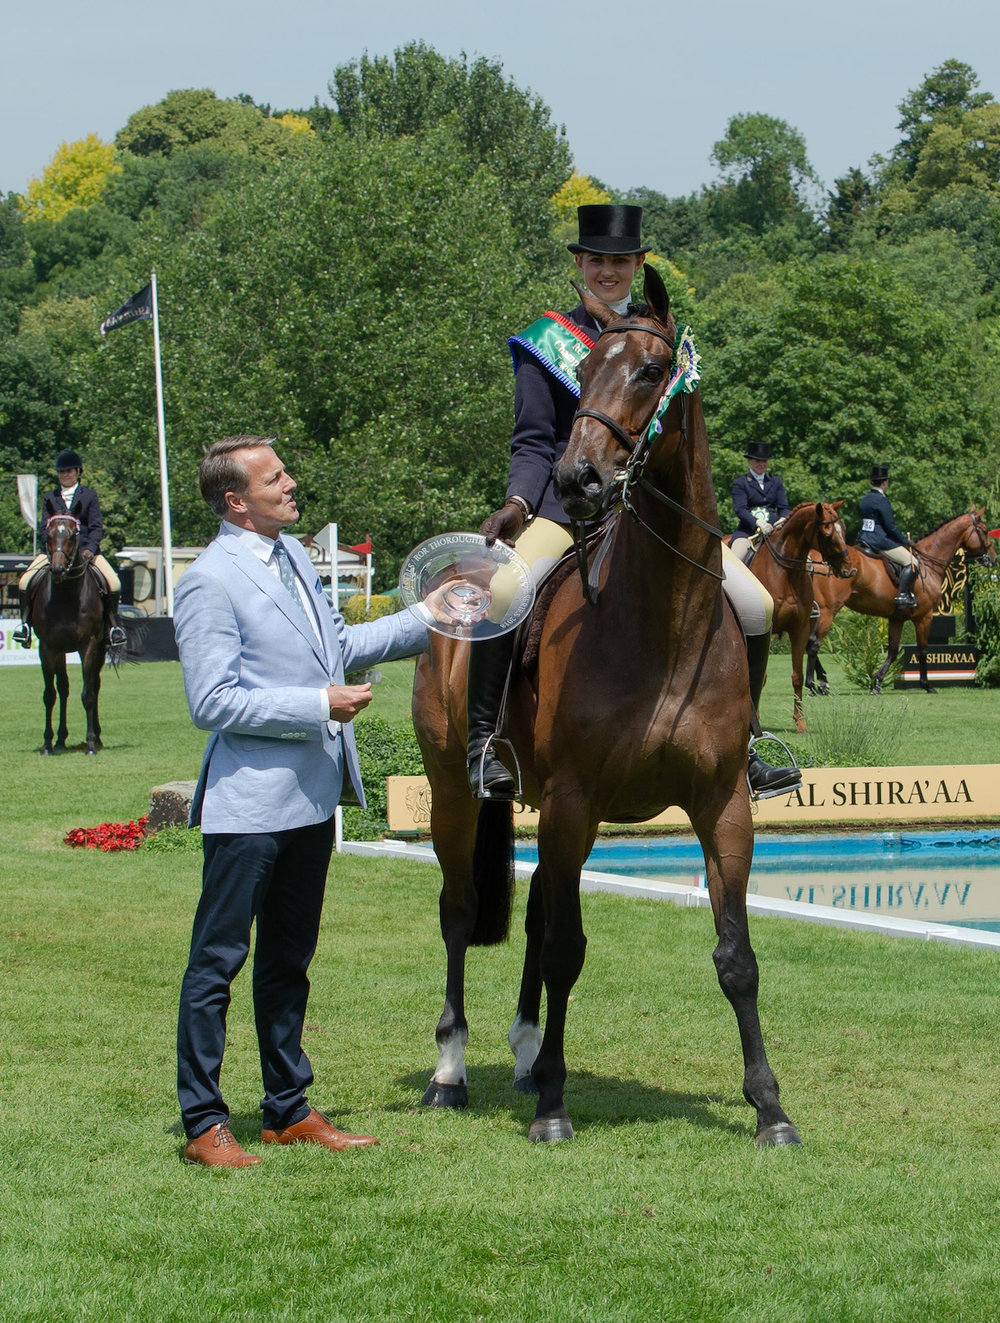 Winner of the RoR Show Series Champion,  former racehorse What Of It, ridden by Hannah Horton. Julian Portche Photography